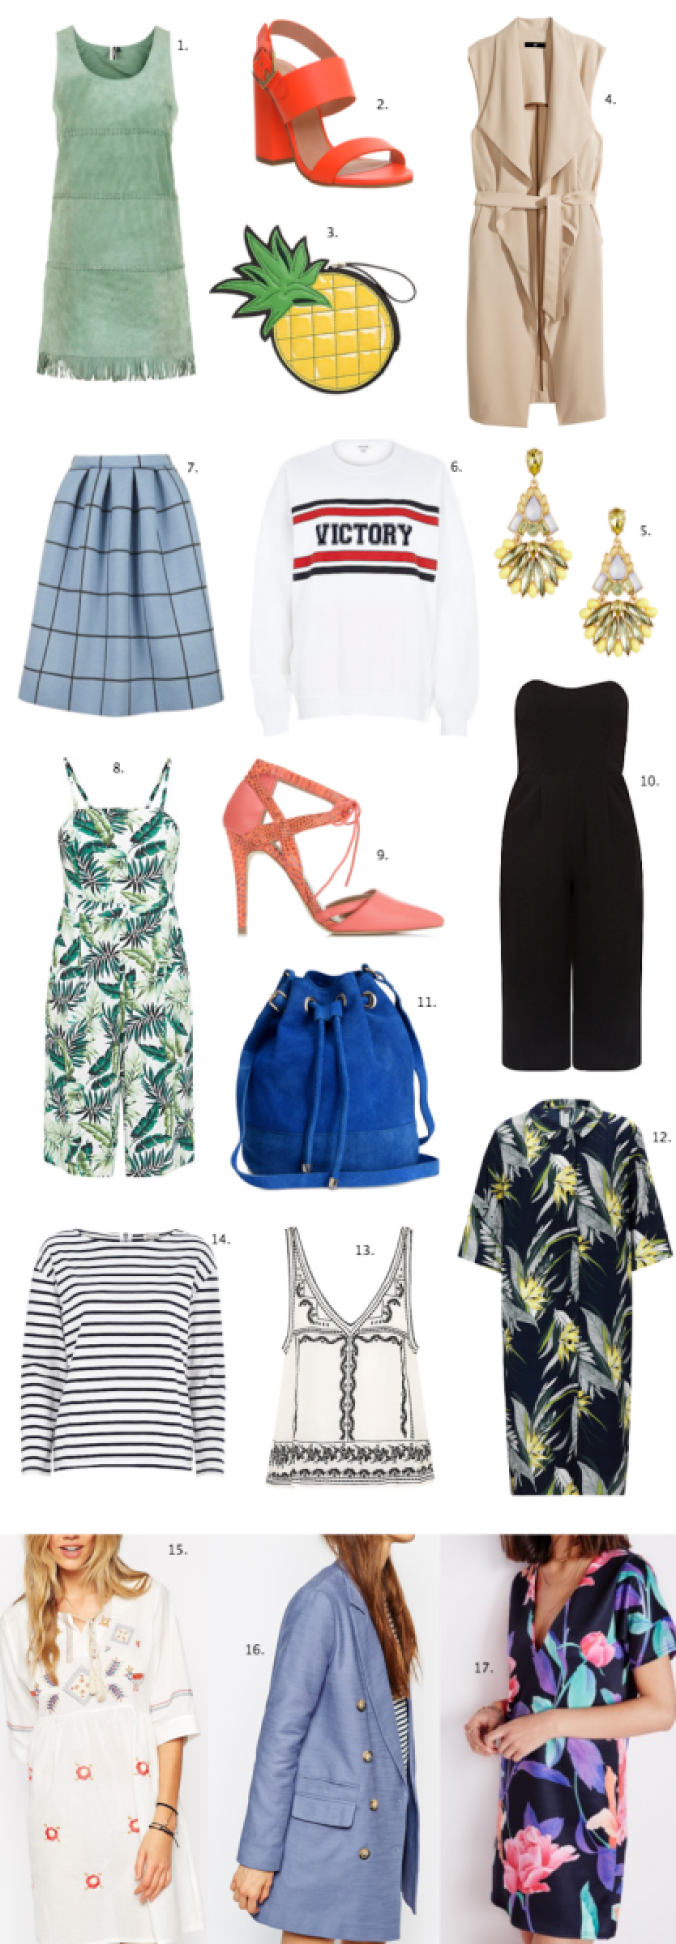 april fash wish list